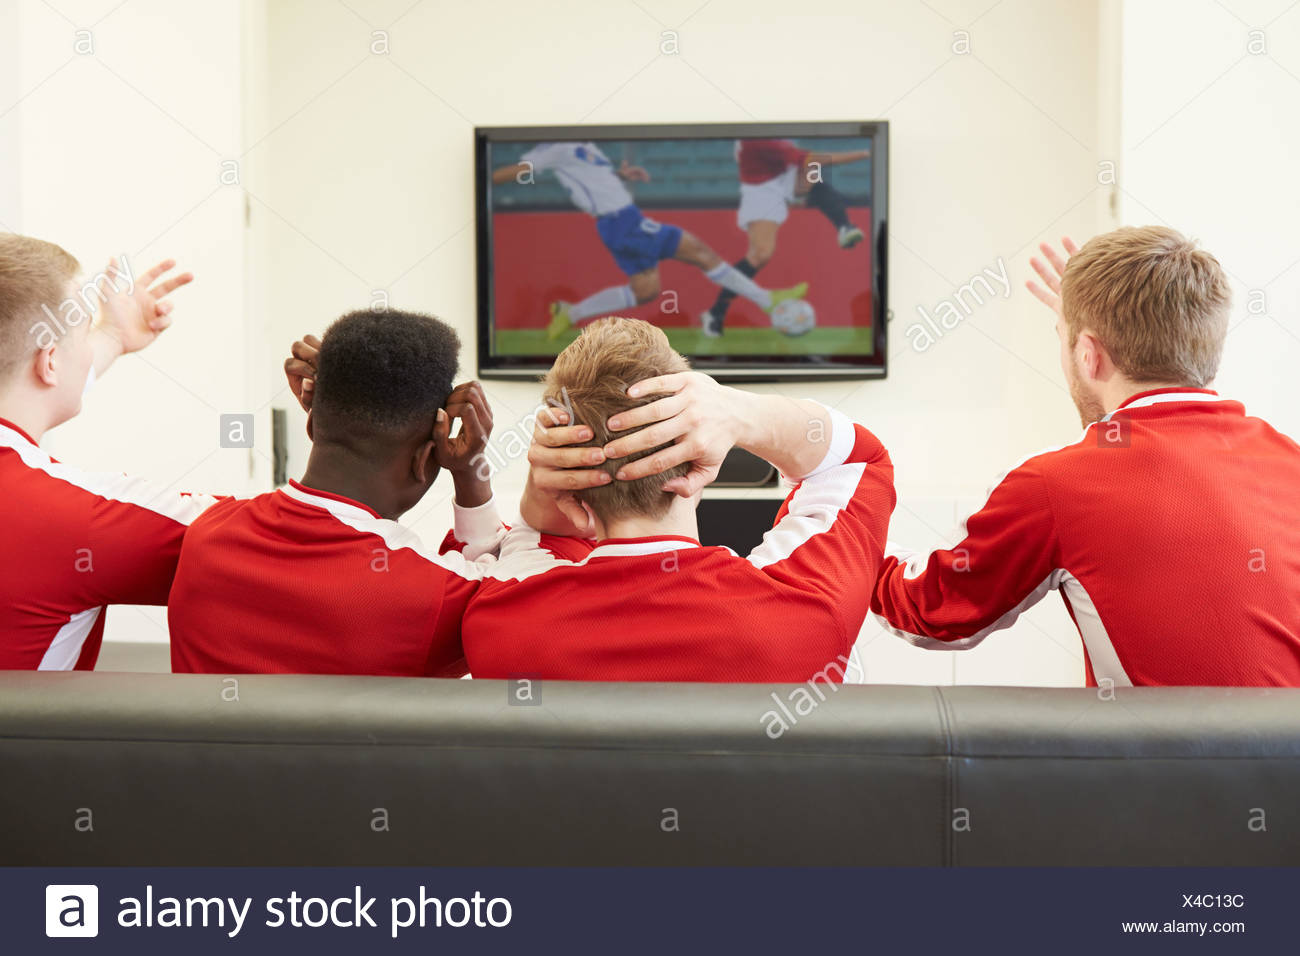 Group Of Sports Fans Watching Game On TV At Home - Stock Image